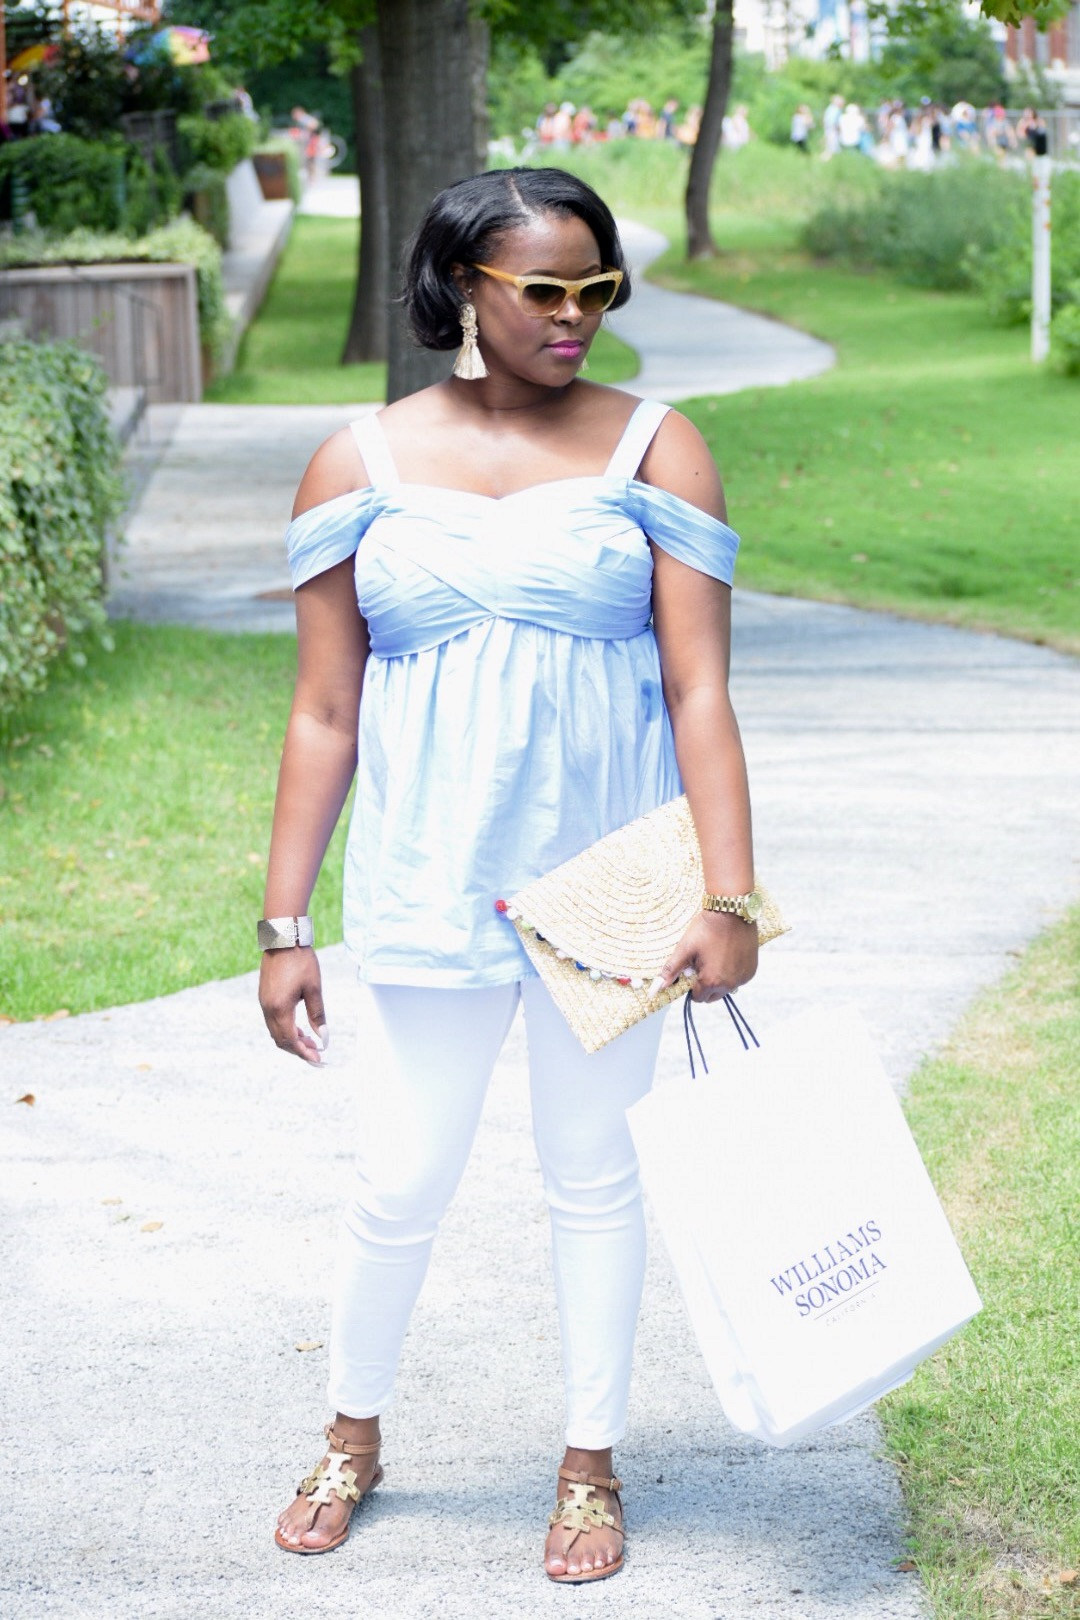 Ann Taylor Shirt (on sale!  here ), Zara Jeans ( here ), Tory Burch Sandals (old, but I like  these ), Pom Pom Clutch ( here ), Earrings ( here ), Valentino Sunnies!